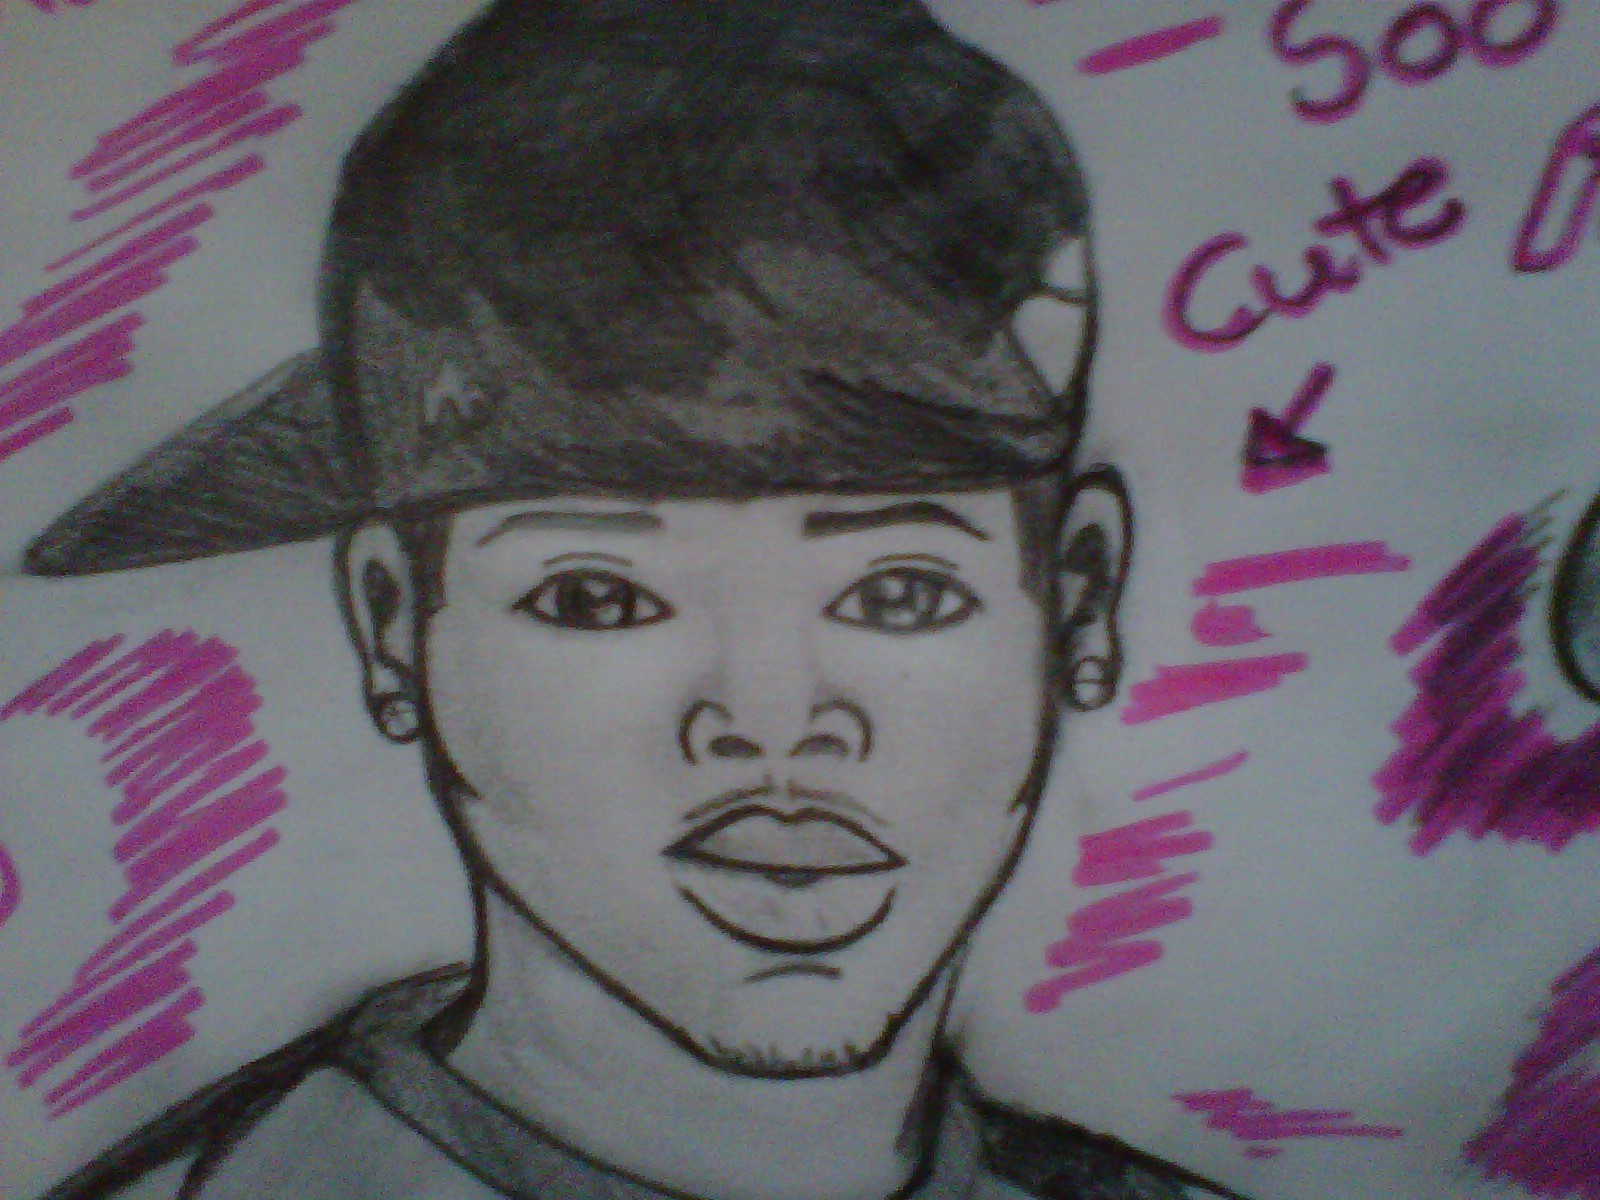 kris-brown images chris brown drawing hd fond d'écran and background